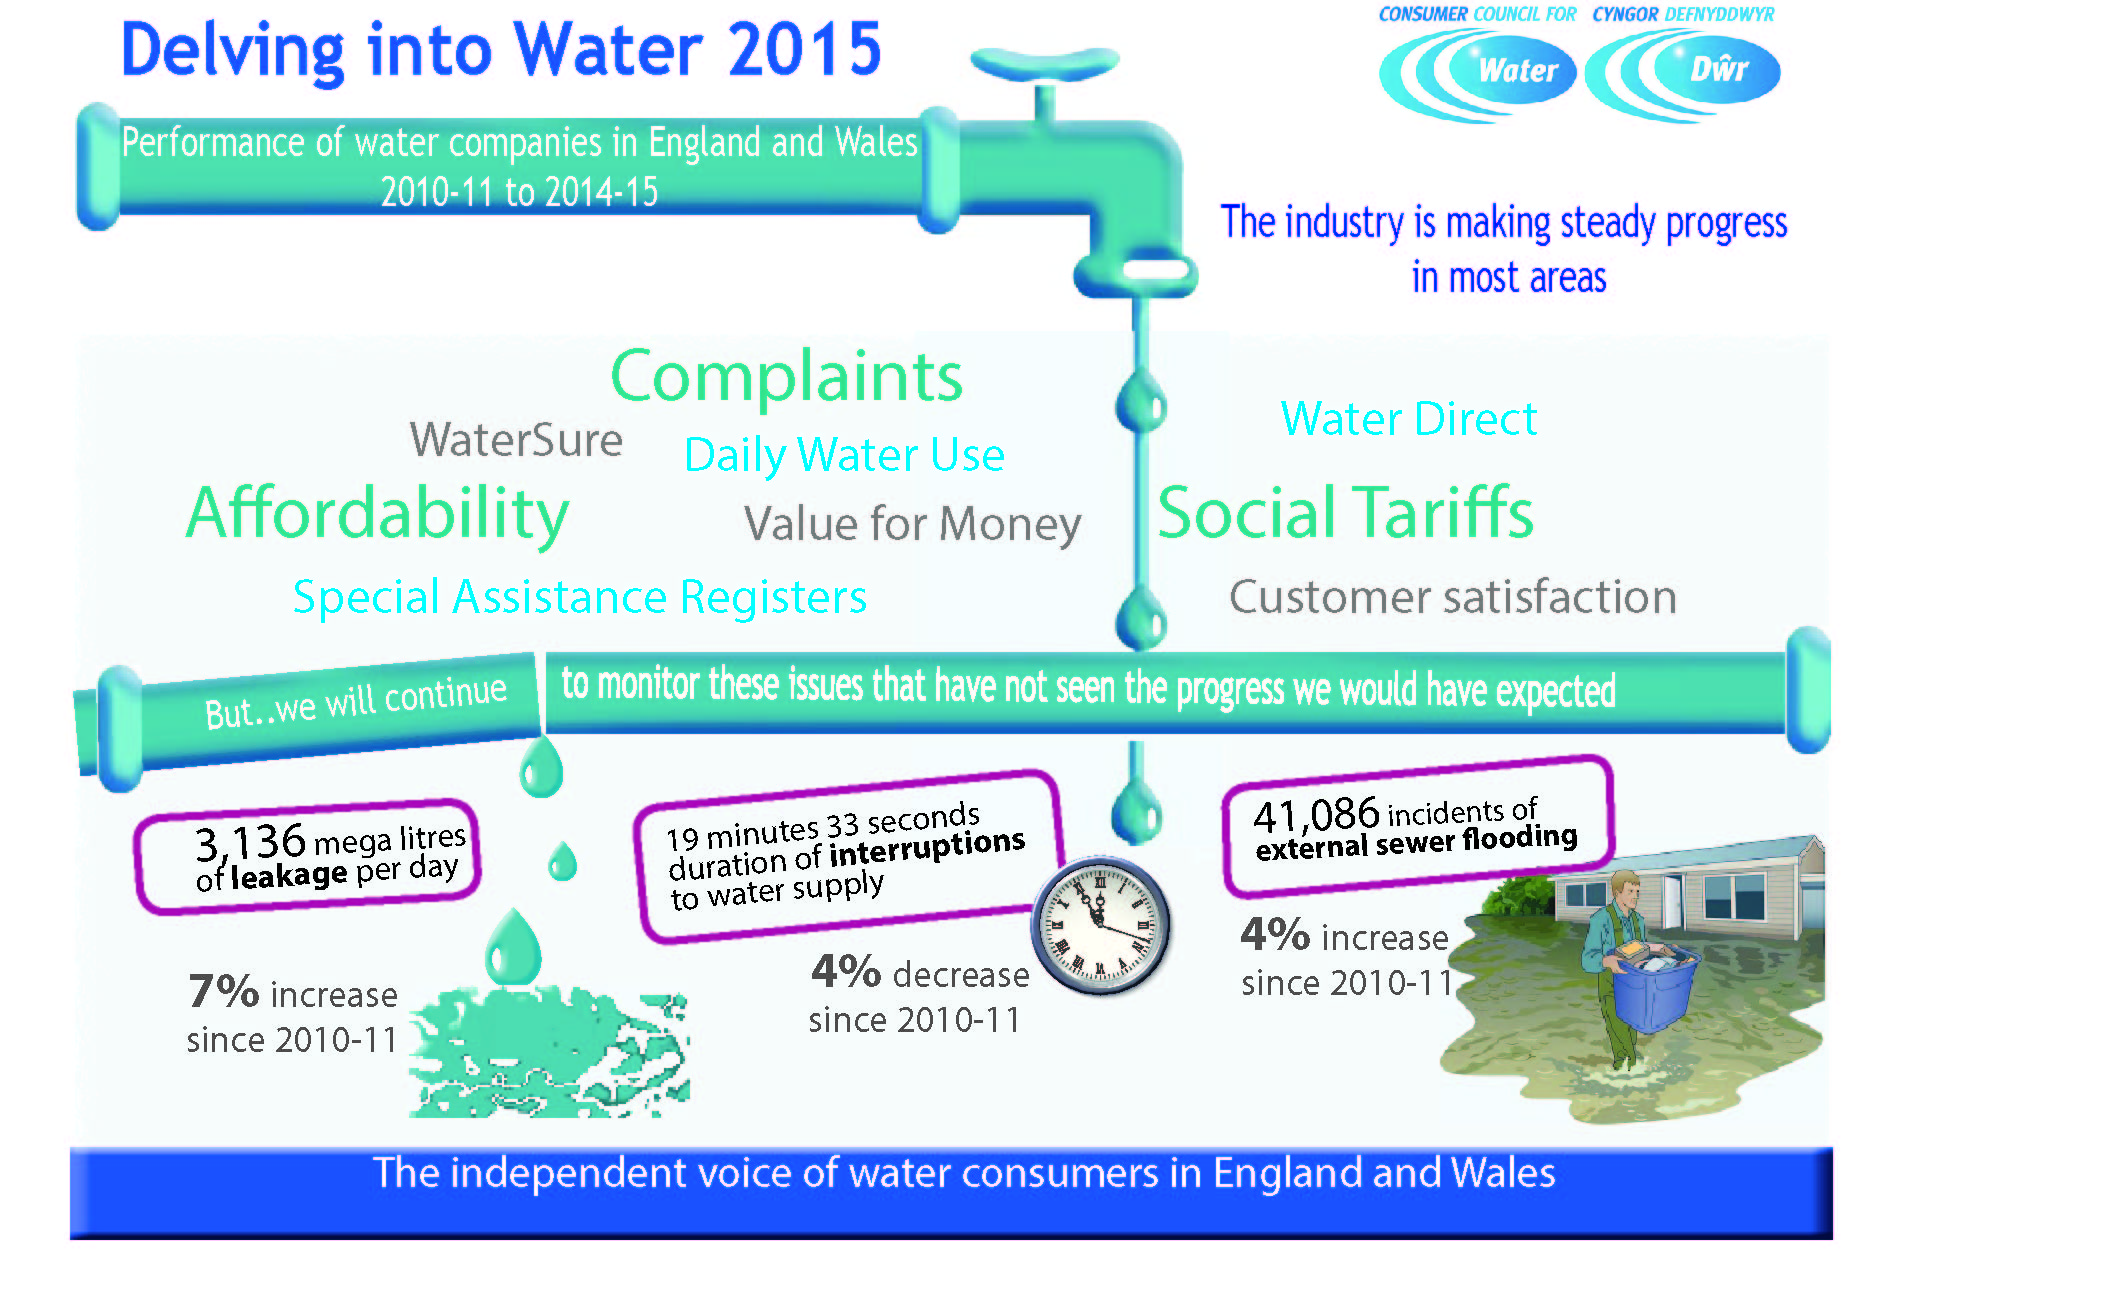 delving into water Inforgraphic